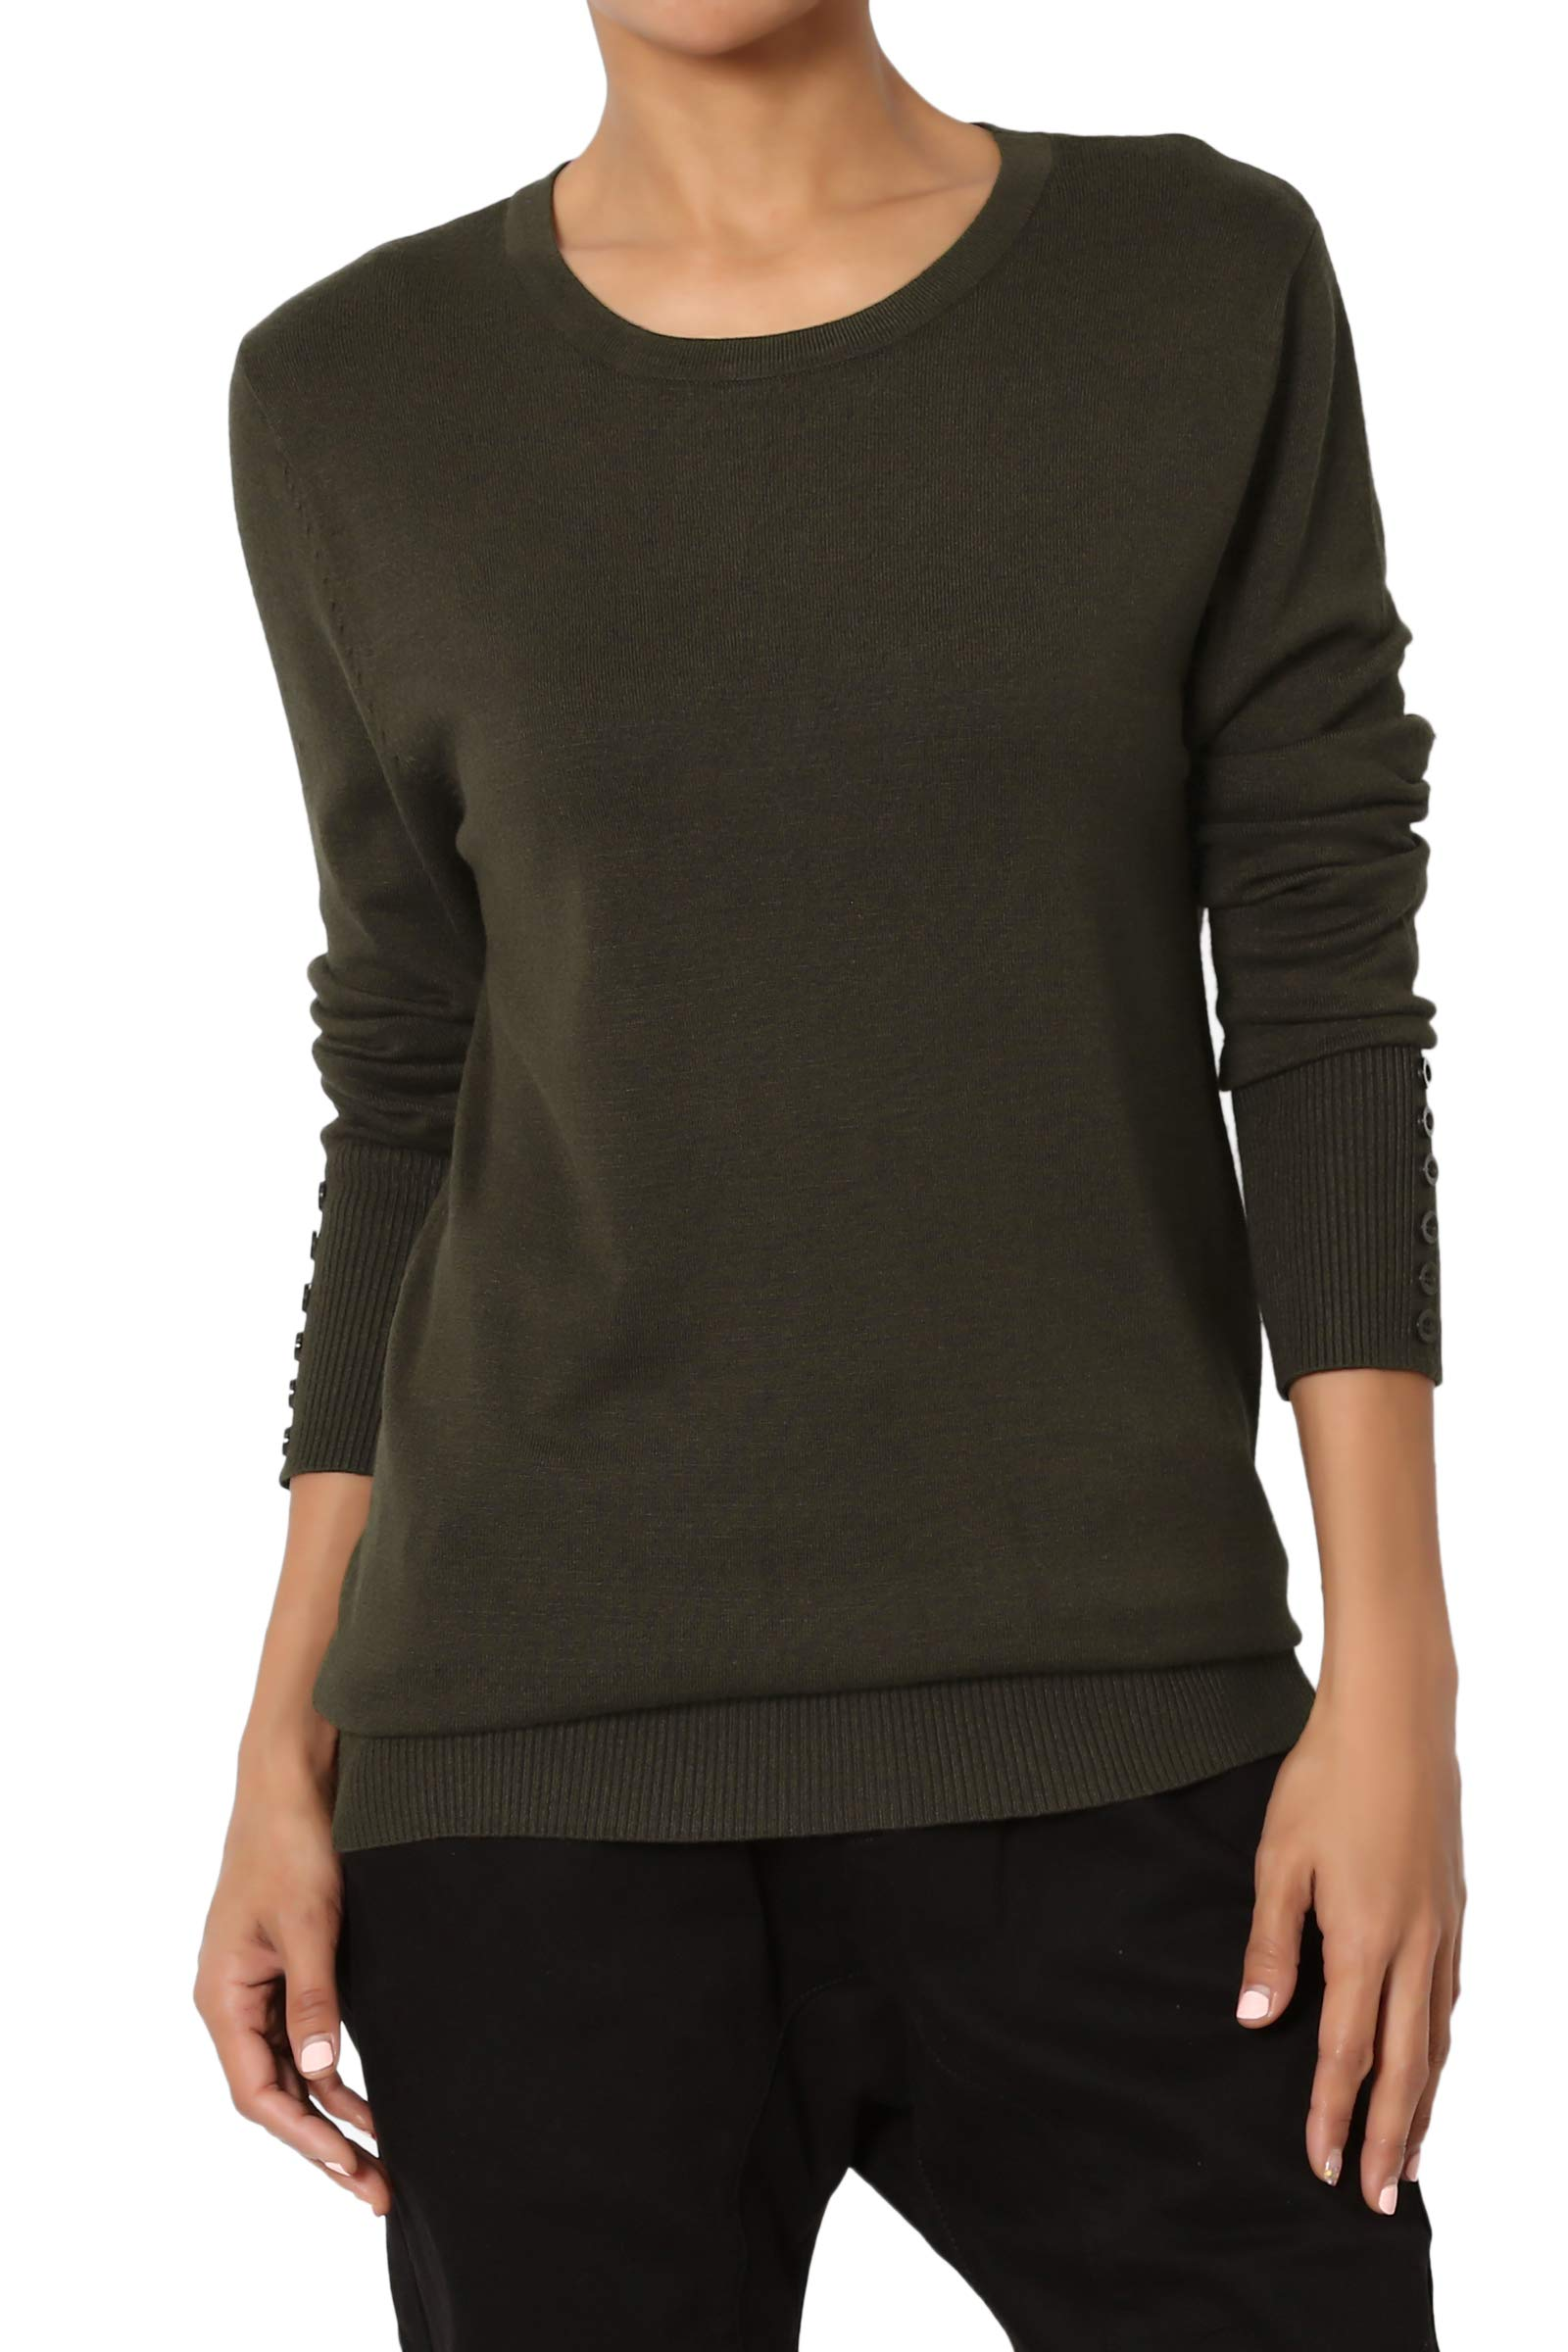 TheMogan Women's Button Long Sleeve Crew Neck Loose Fit Knit Sweater Olive L